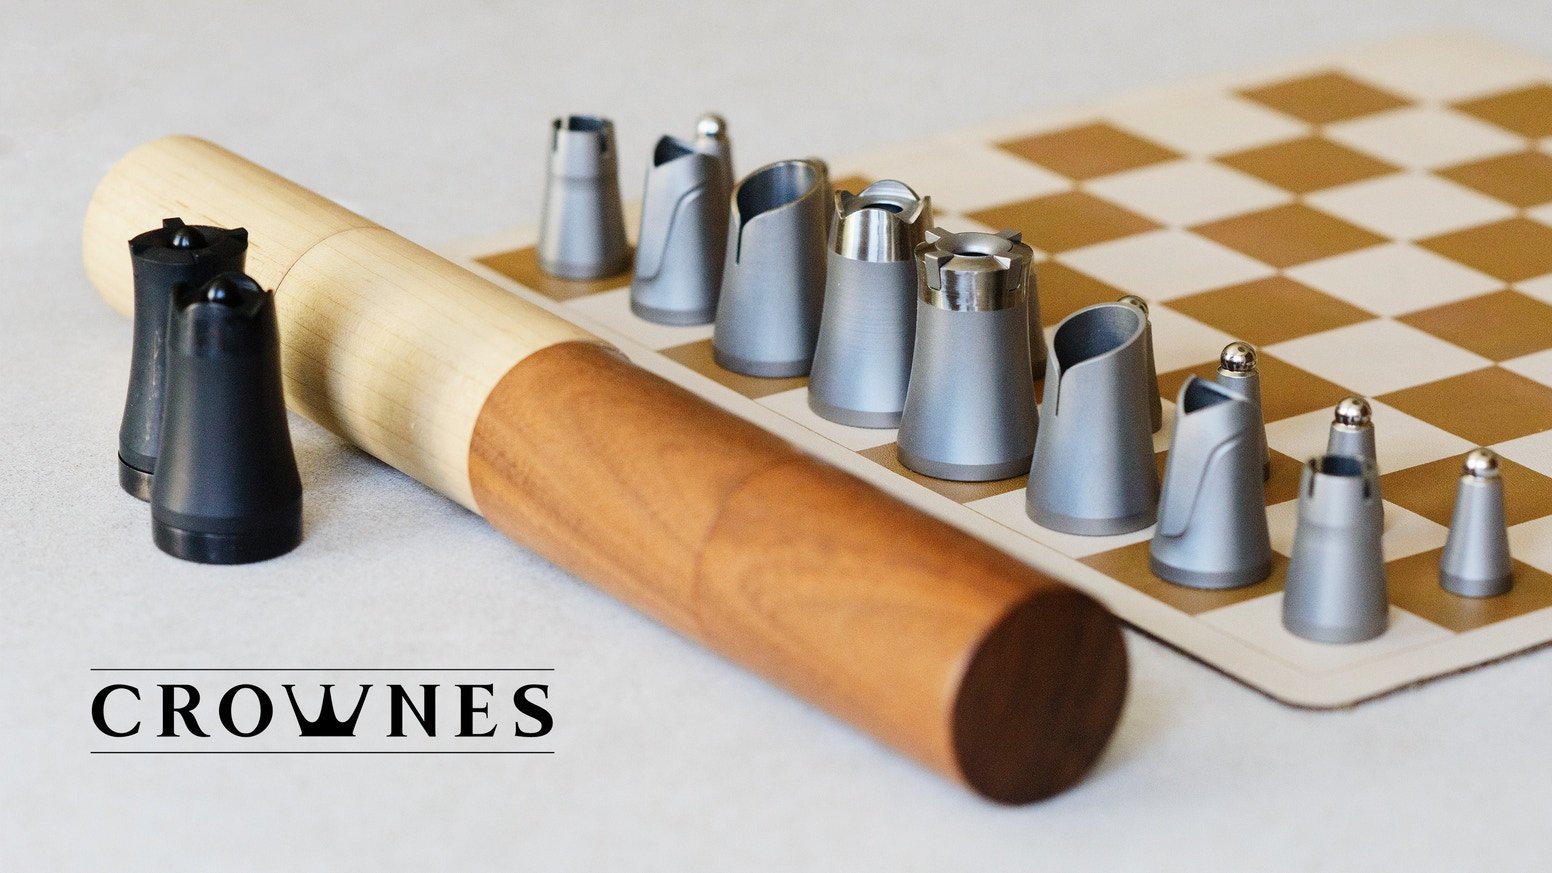 It is a compact solution for a full sized experience. Play this elegant chess set anywhere with anyone.